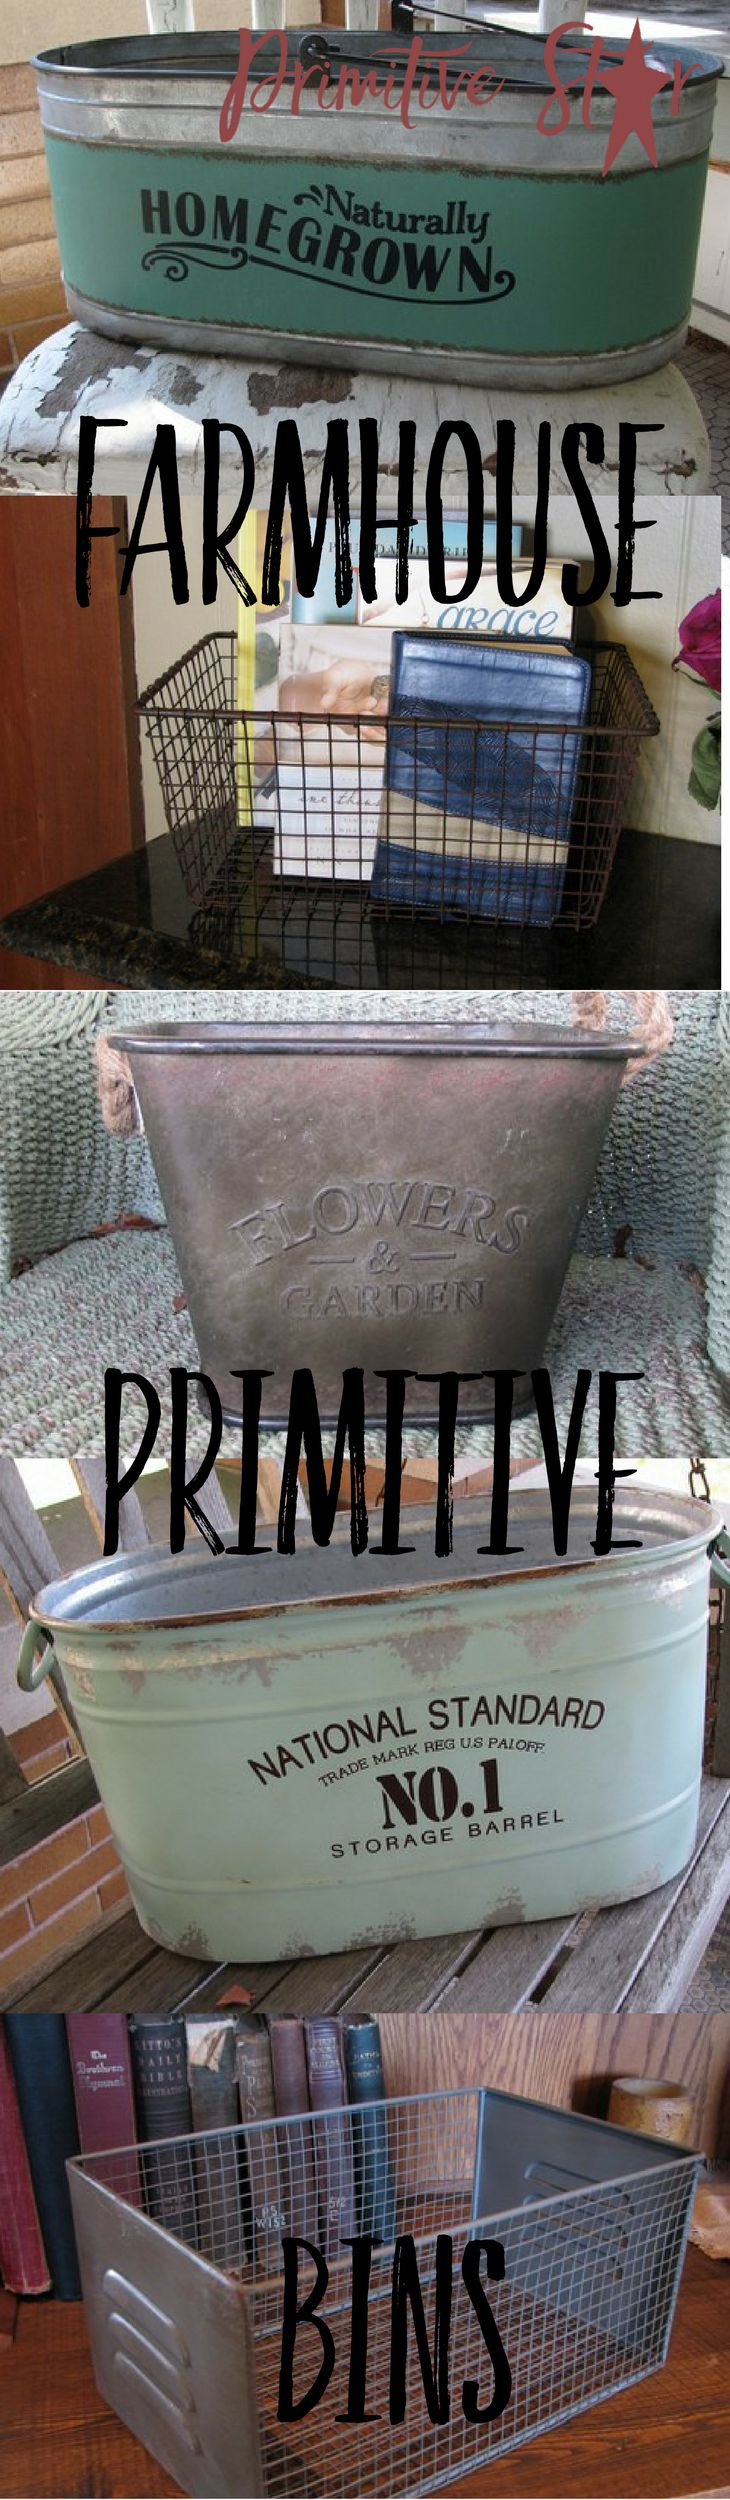 Storage and containers that look cute and rustic!   Check out the supply at PrimitiveStarQuiltShop.com